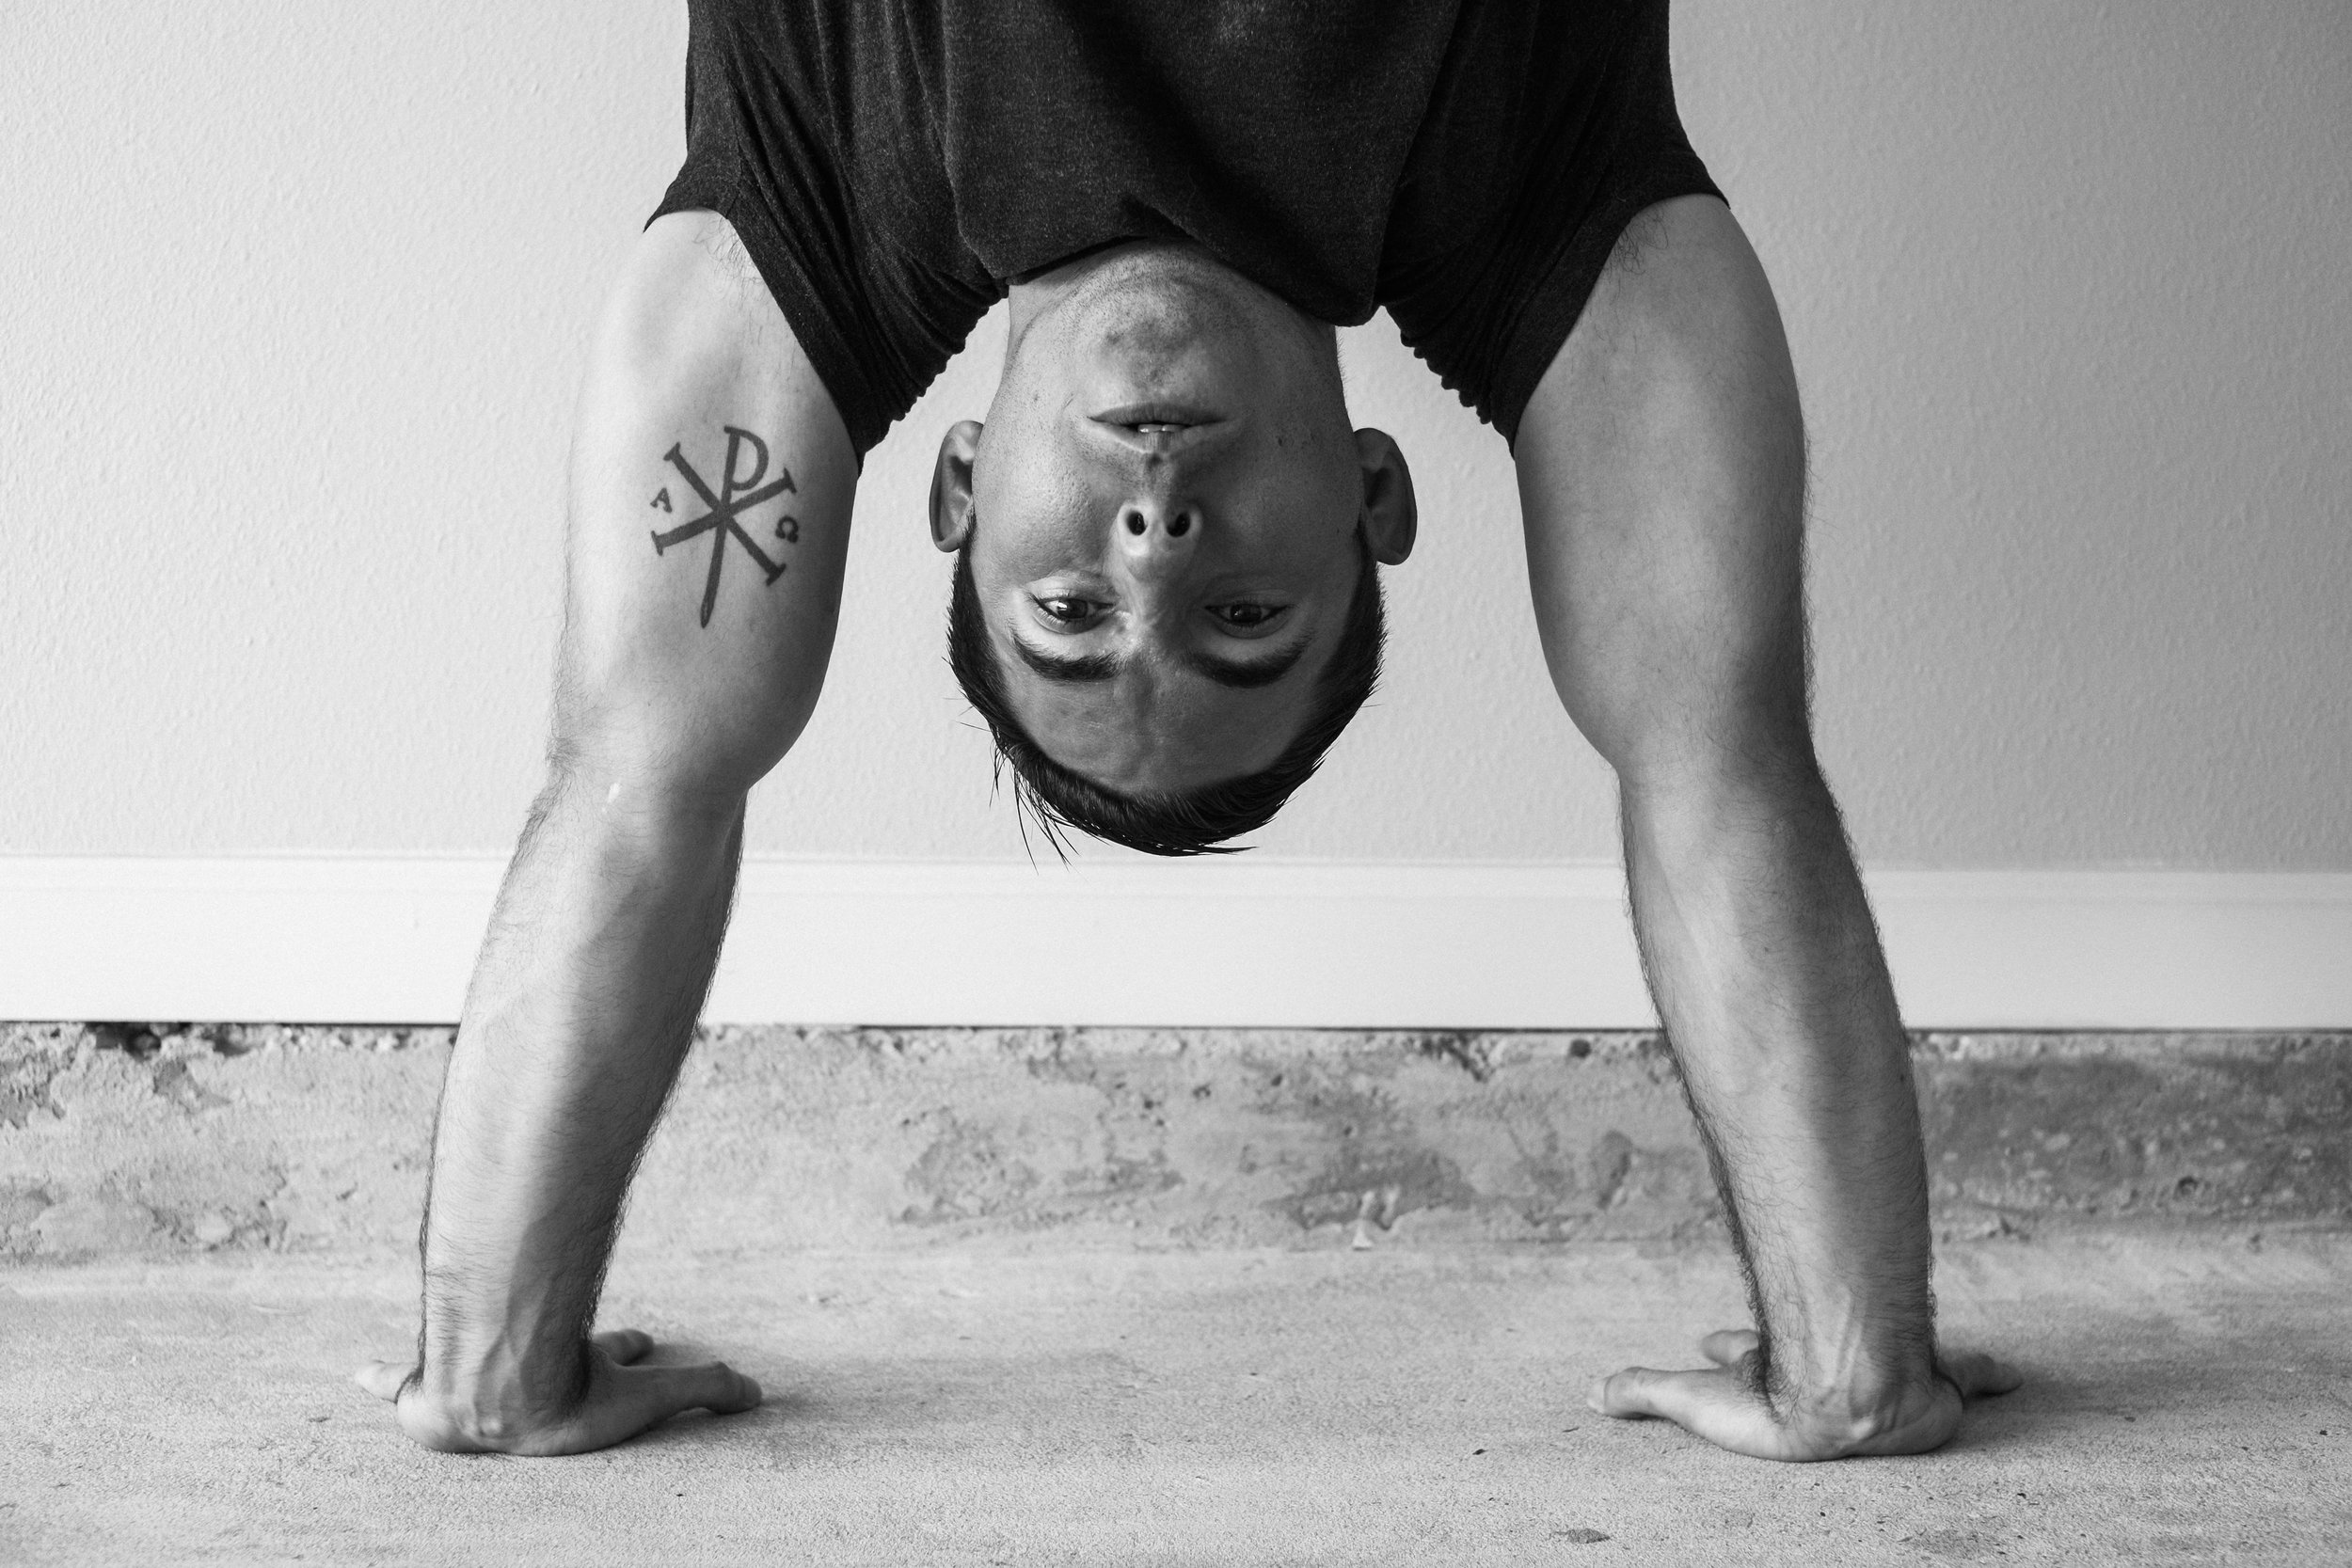 5 days a week to get stronger with just your bodyweight - No handstands needed ….yet